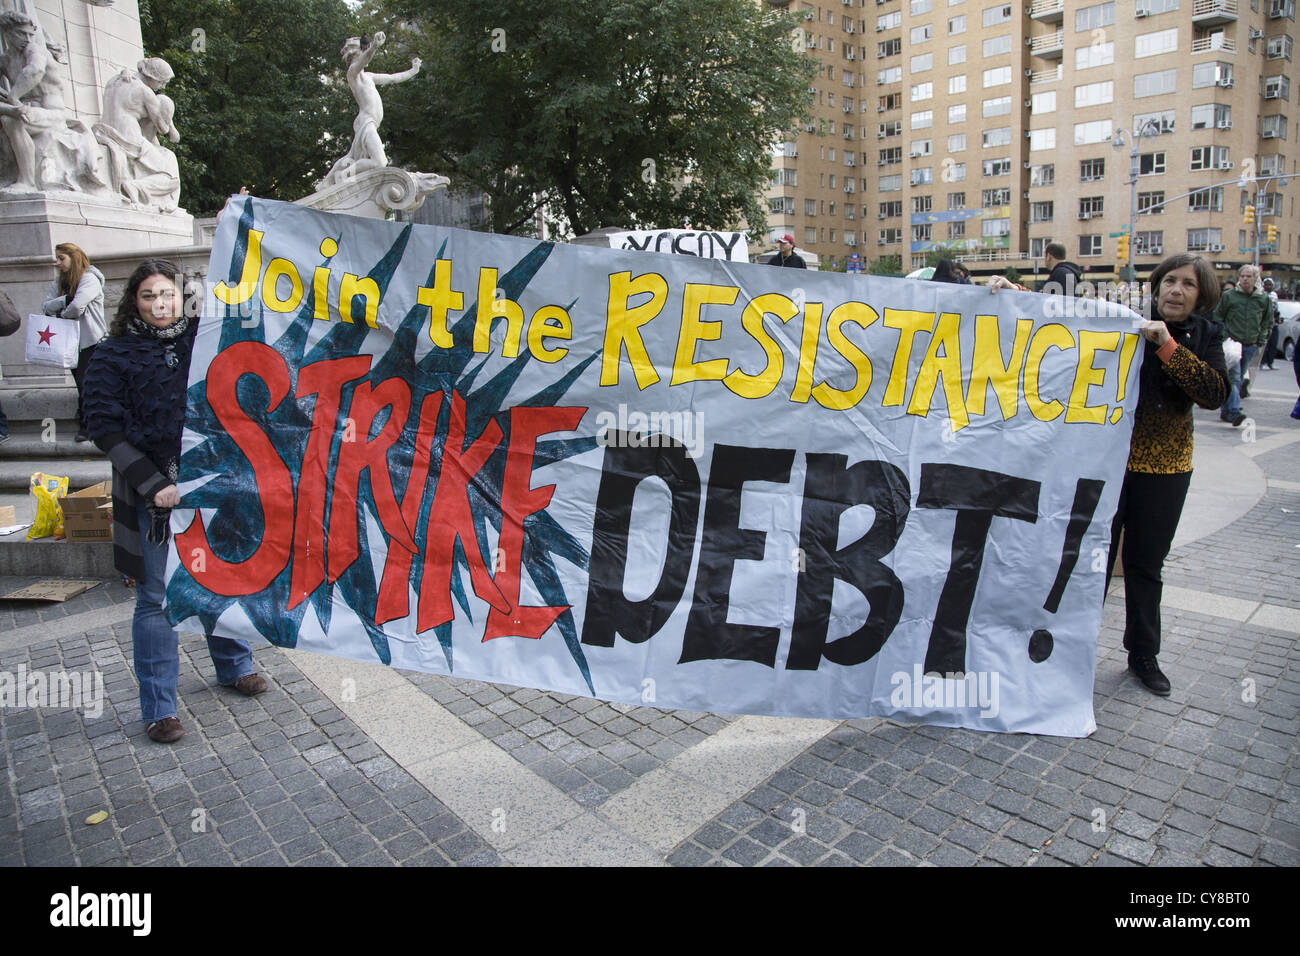 'Occupy Dept' an arm of Occupy Wall Street speak out against student debt at Columbus Circle, NYC. - Stock Image